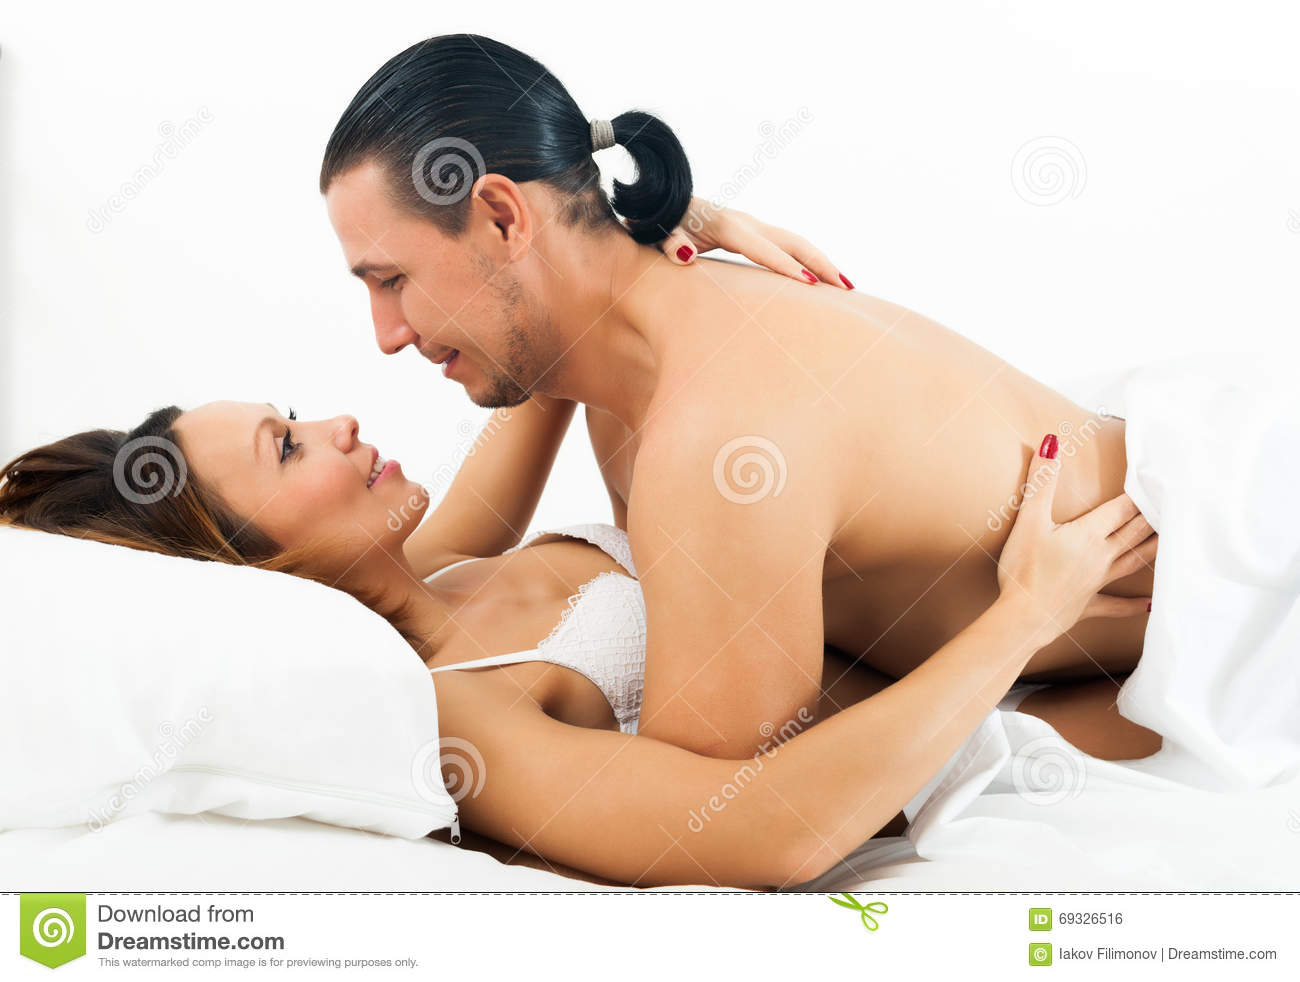 Pics of man and woman having sex